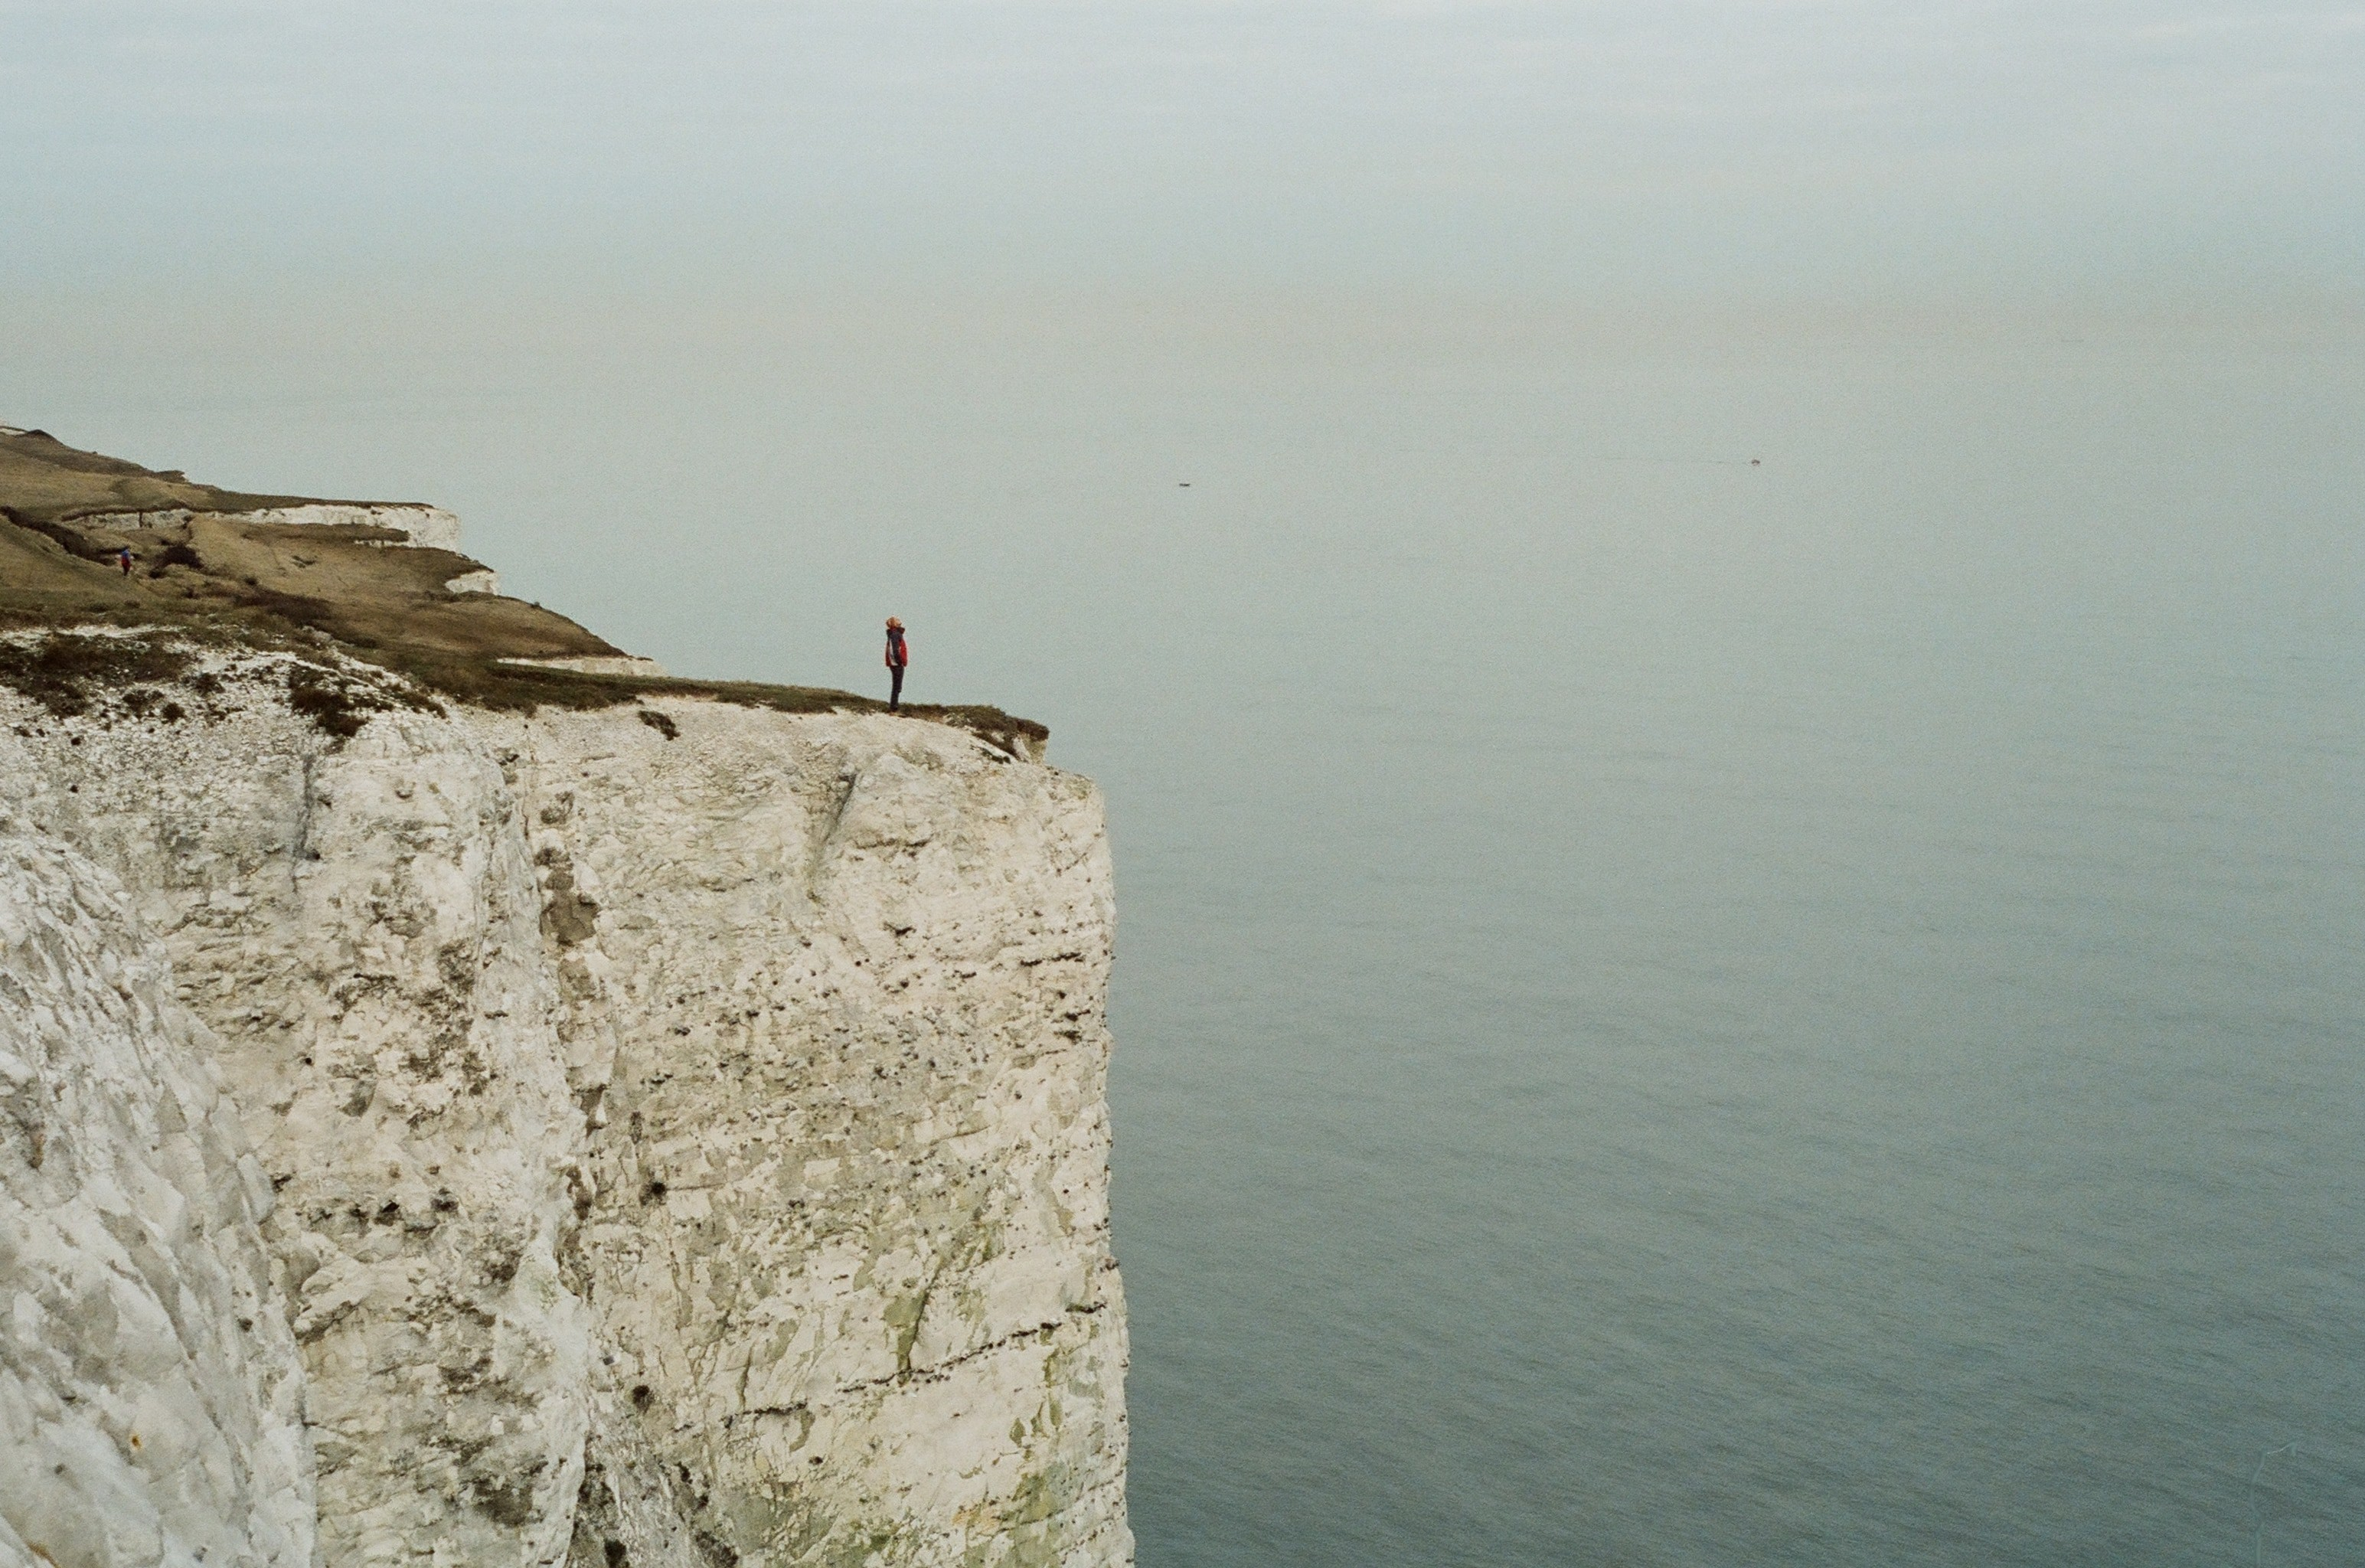 Long distance shot of a figure standing on the edge of a cliff.